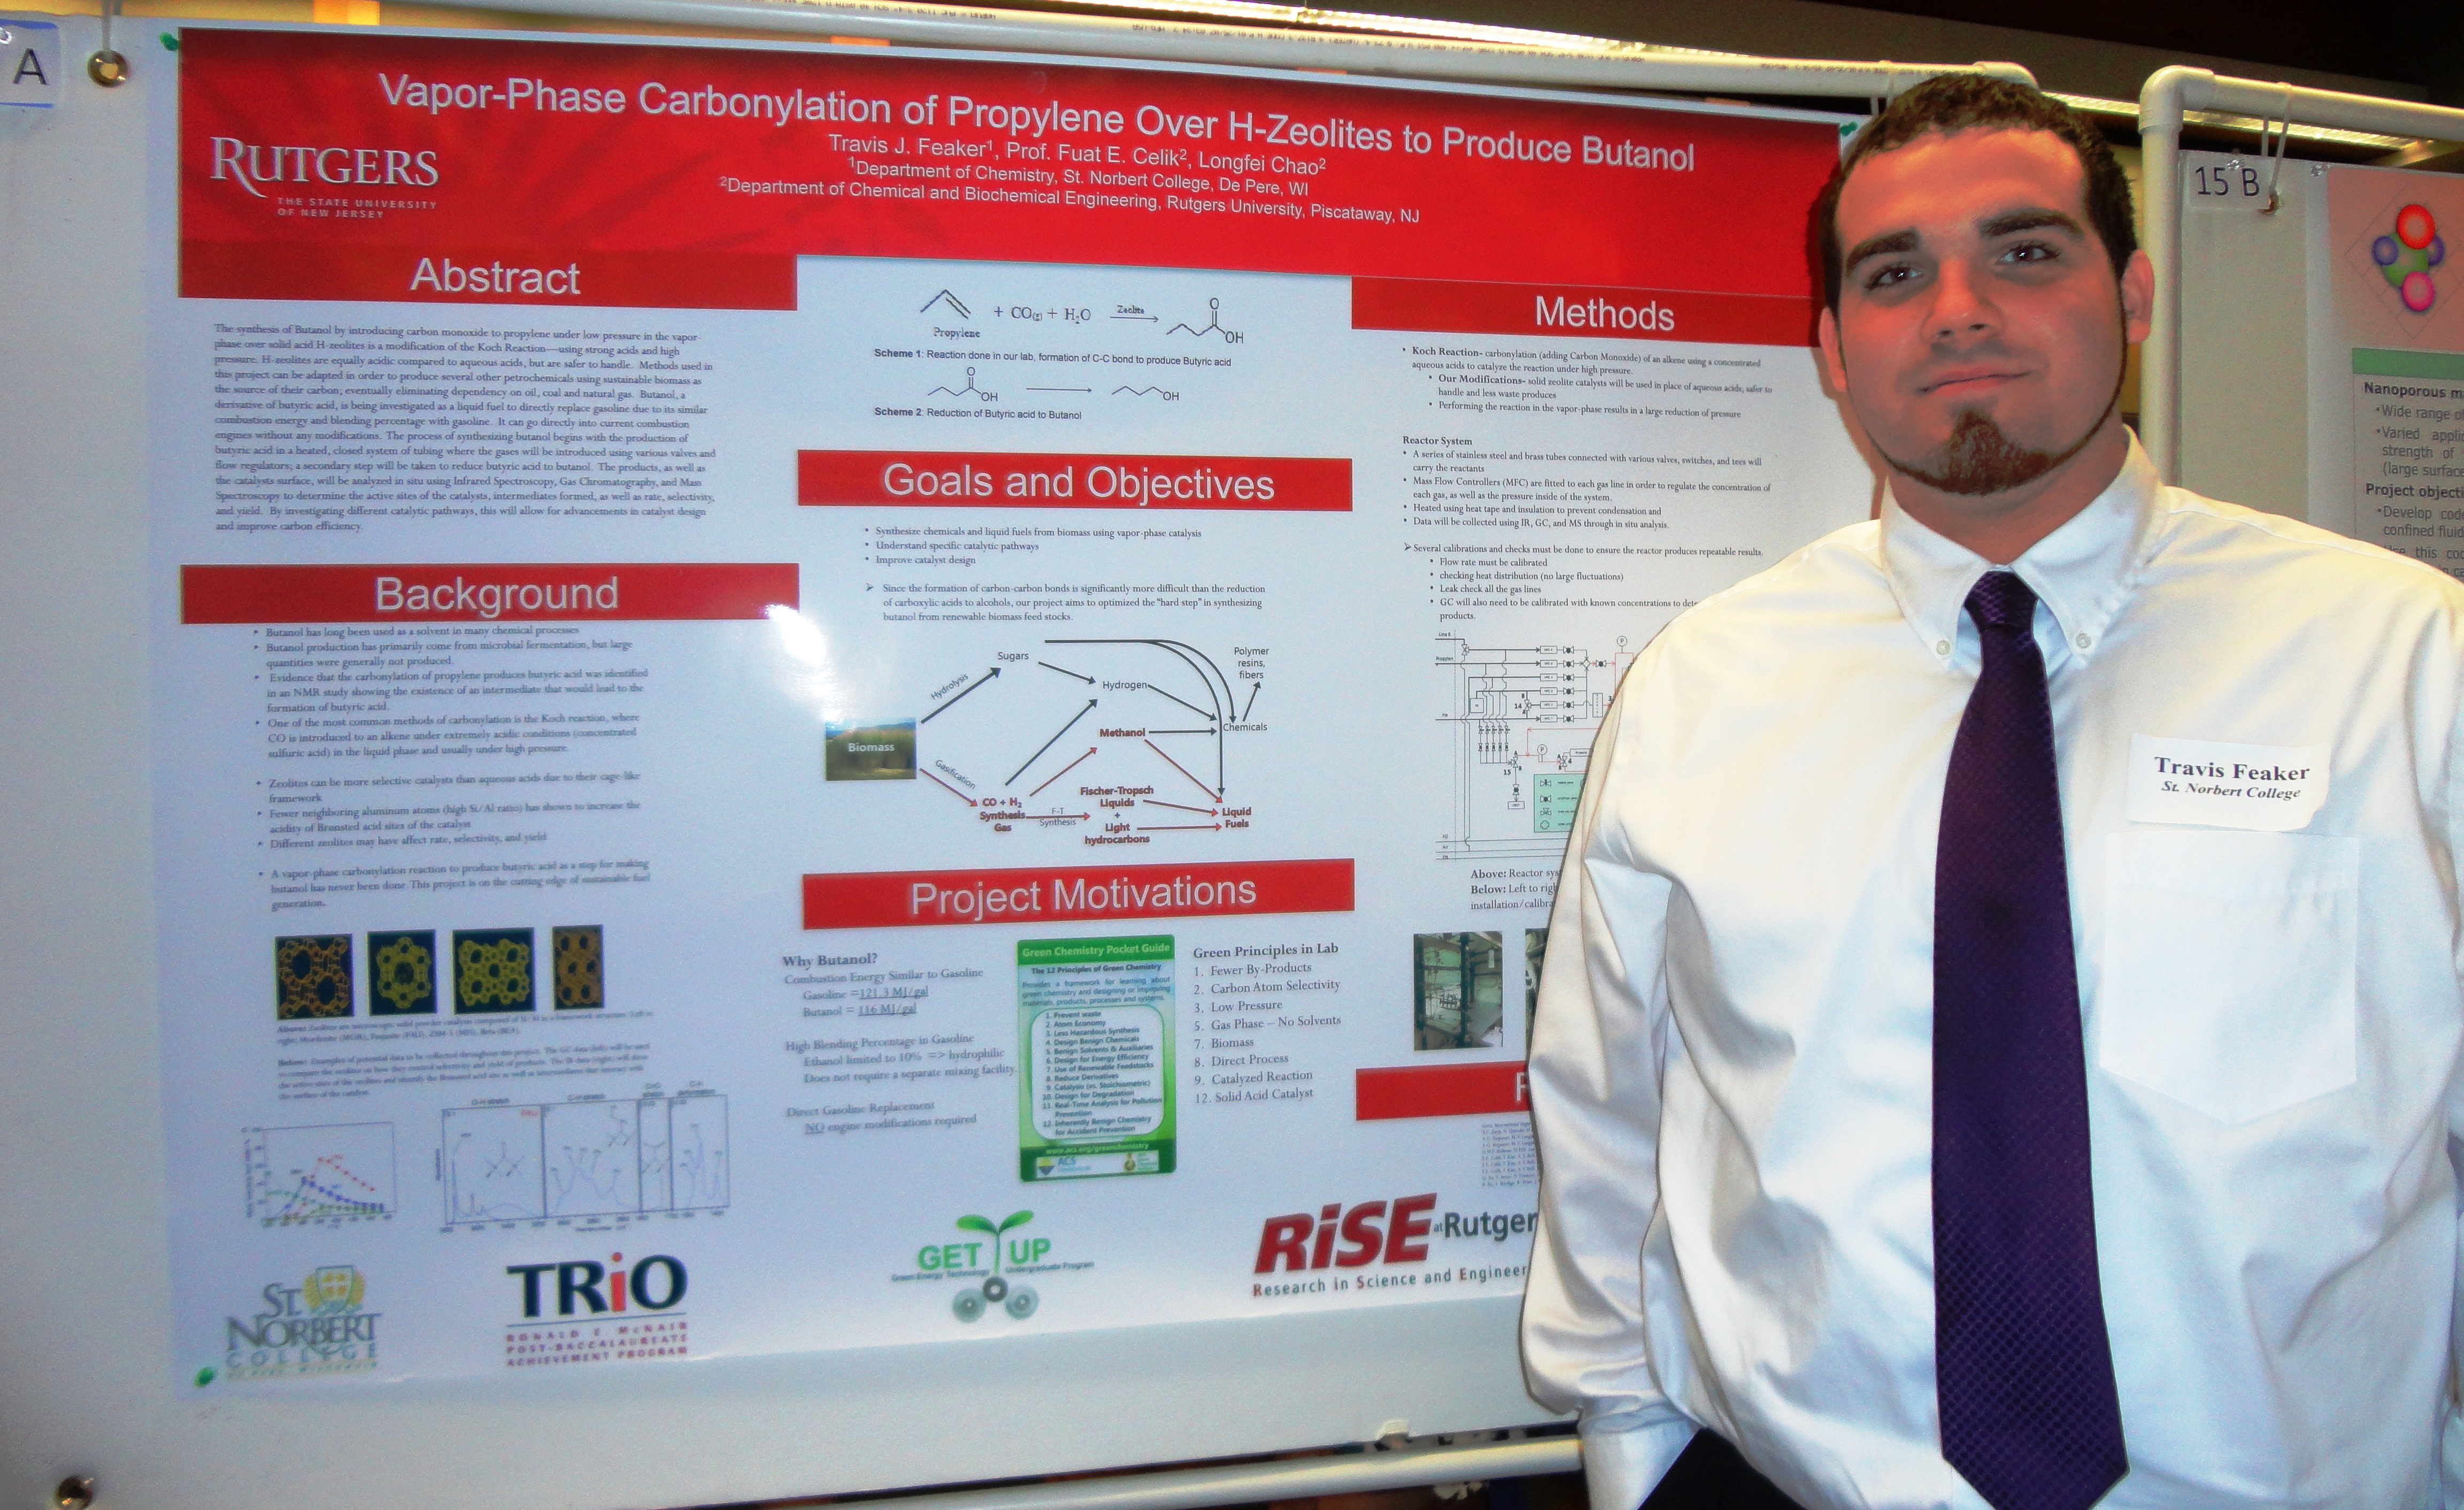 Travis Feaker - Final Poster Symposium.jpg